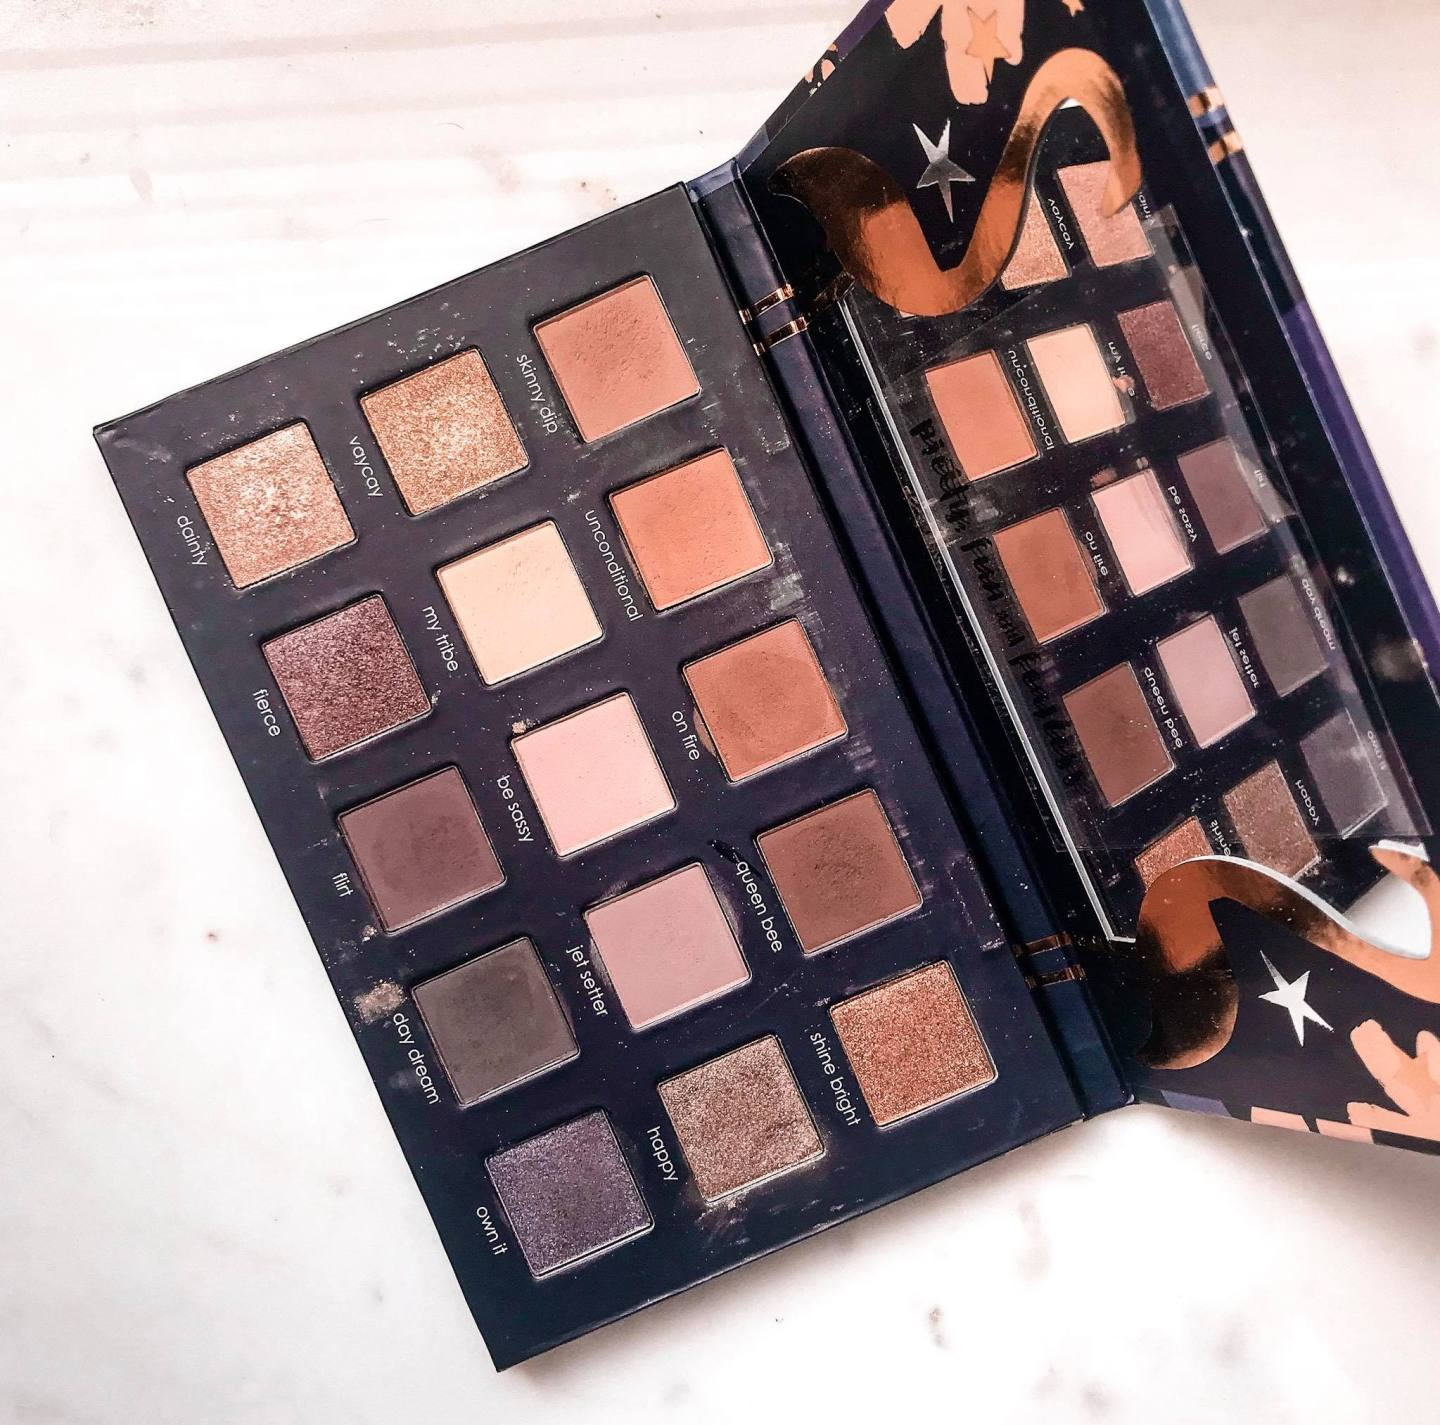 chloe morello x ciate london palette